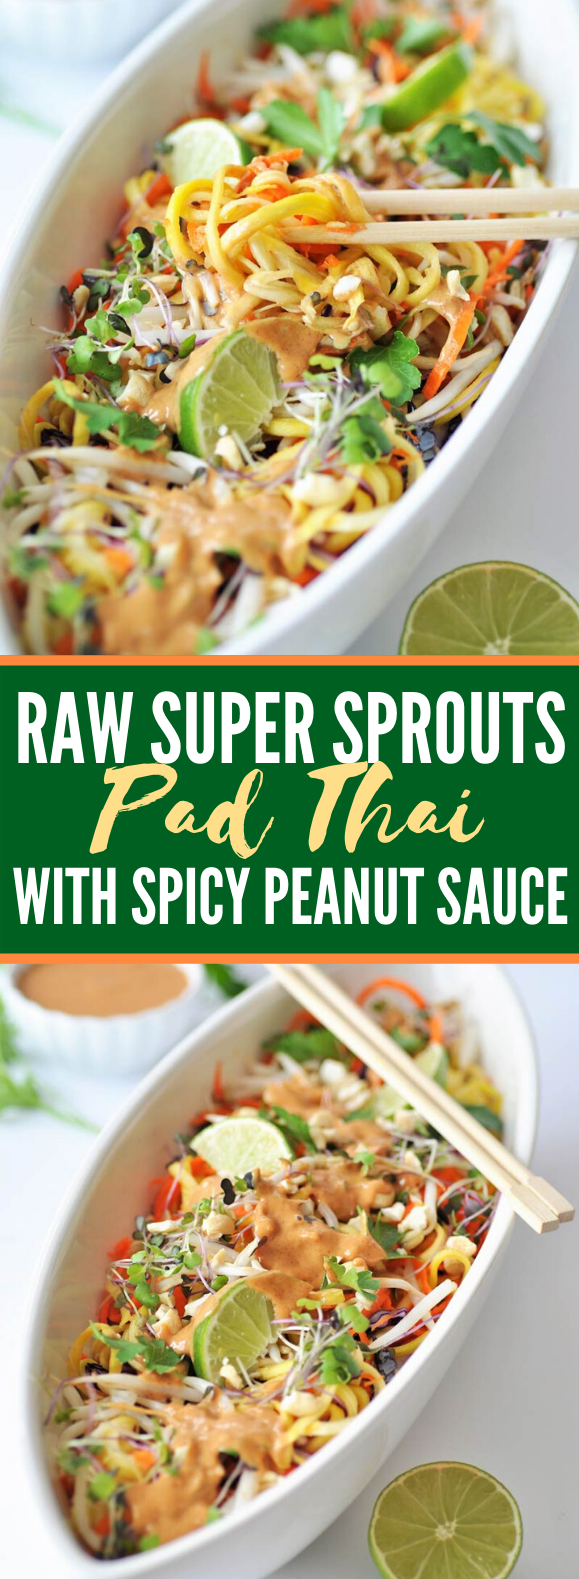 RAW SUPER SPROUTS PAD THAI WITH SPICY PEANUT SAUCE #vegetarian #healthy